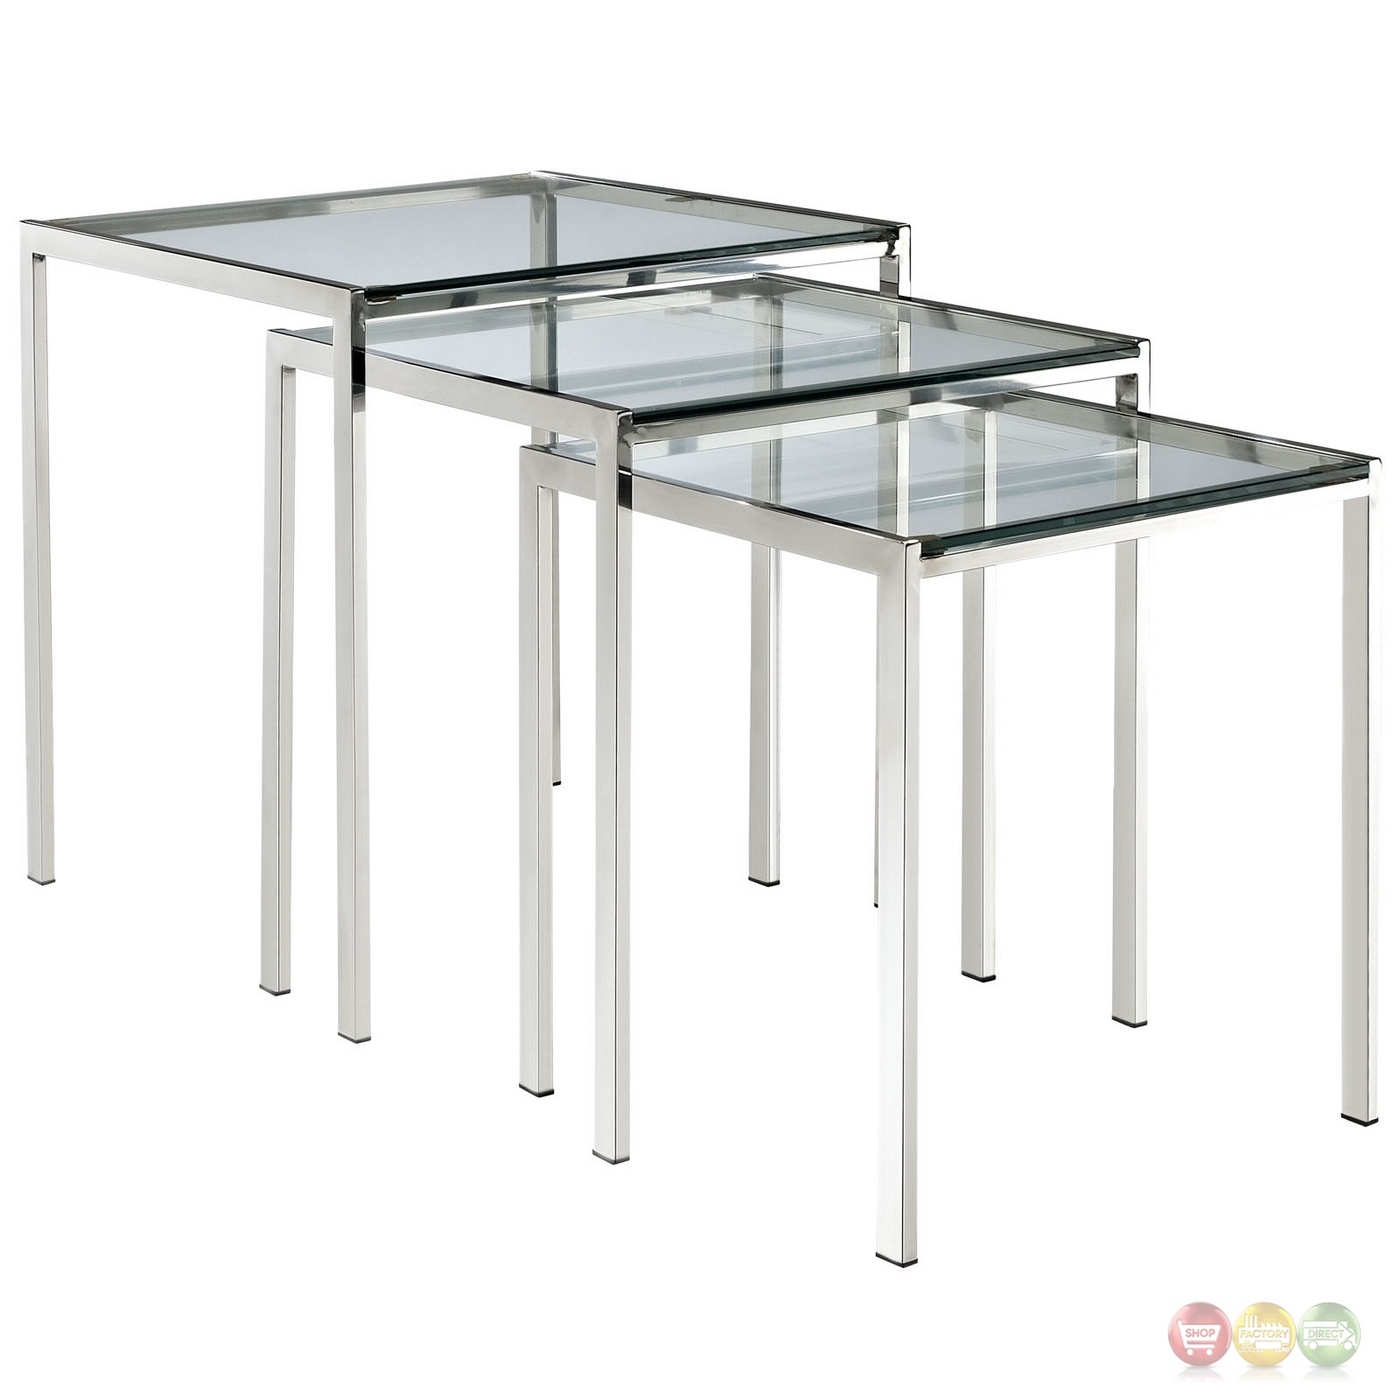 Nimble modern glass top nesting table w stainless steel for Glass top nesting tables